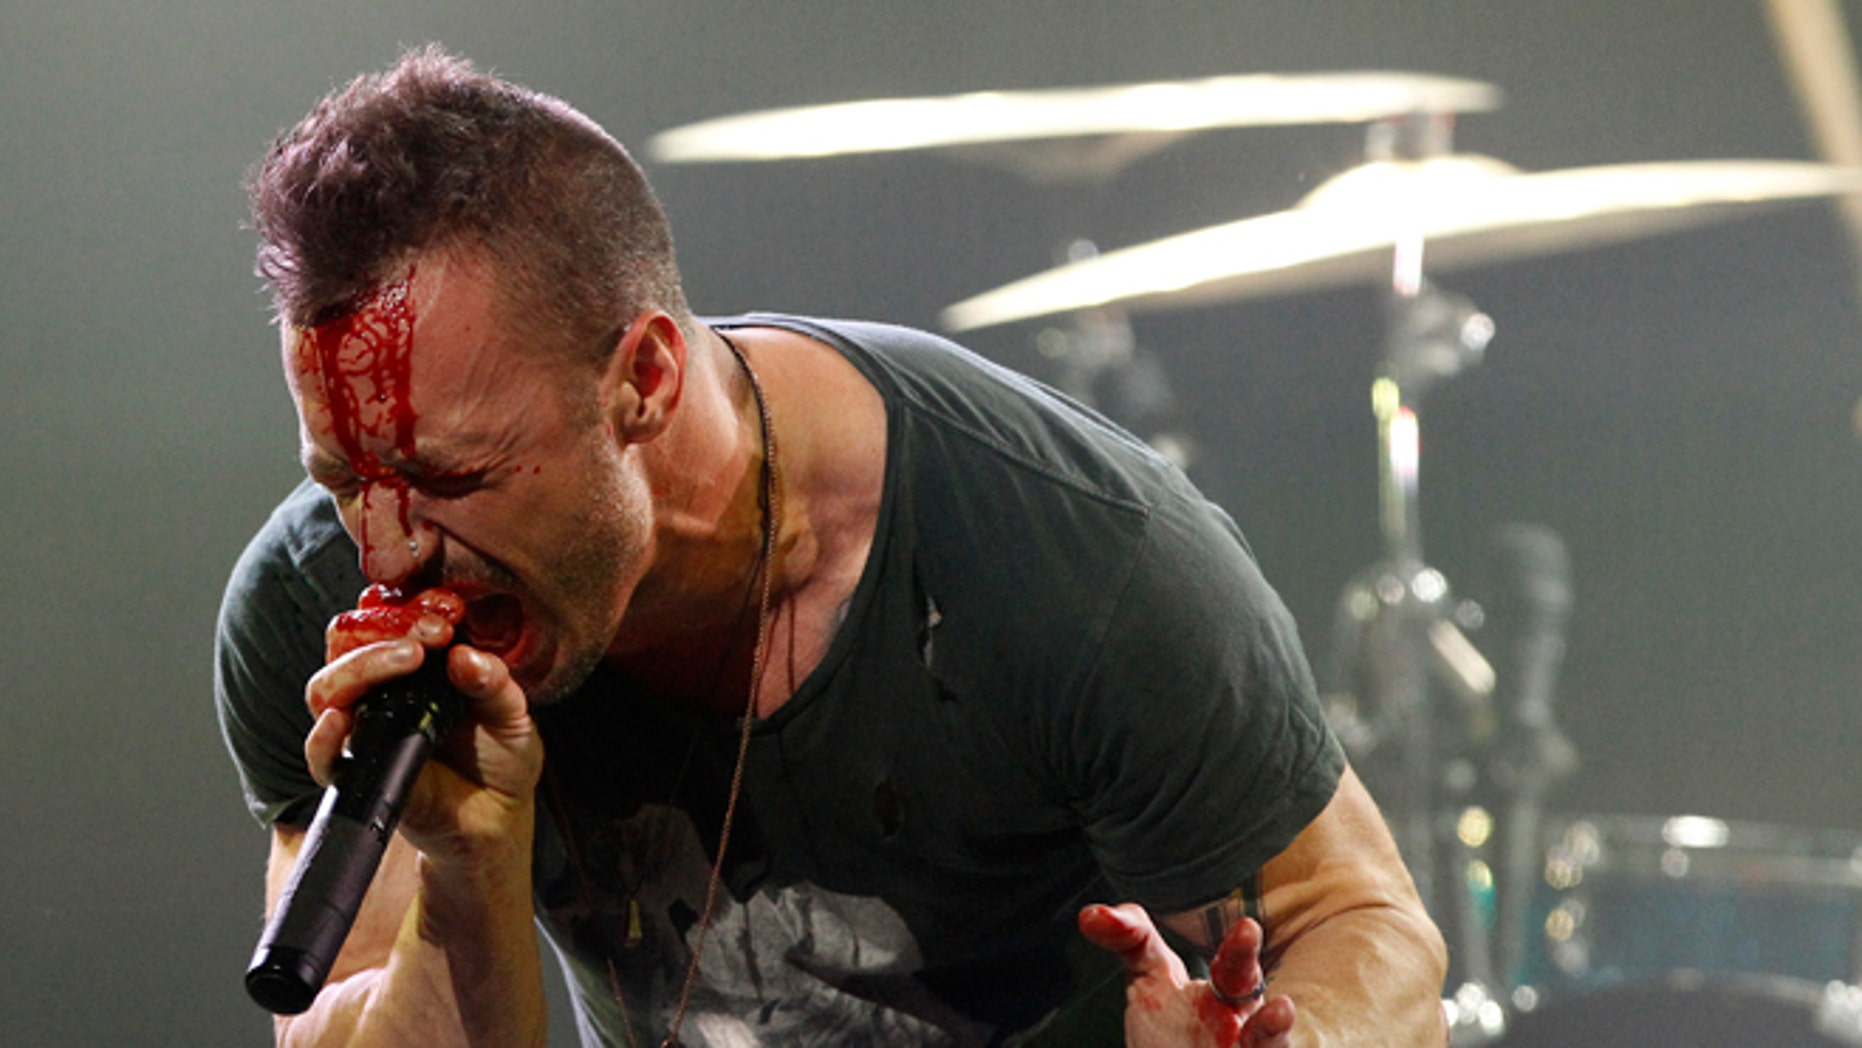 Greg Puciato of the Dillinger Escape Plan performing. The band were involved in a bus accident in Poland.